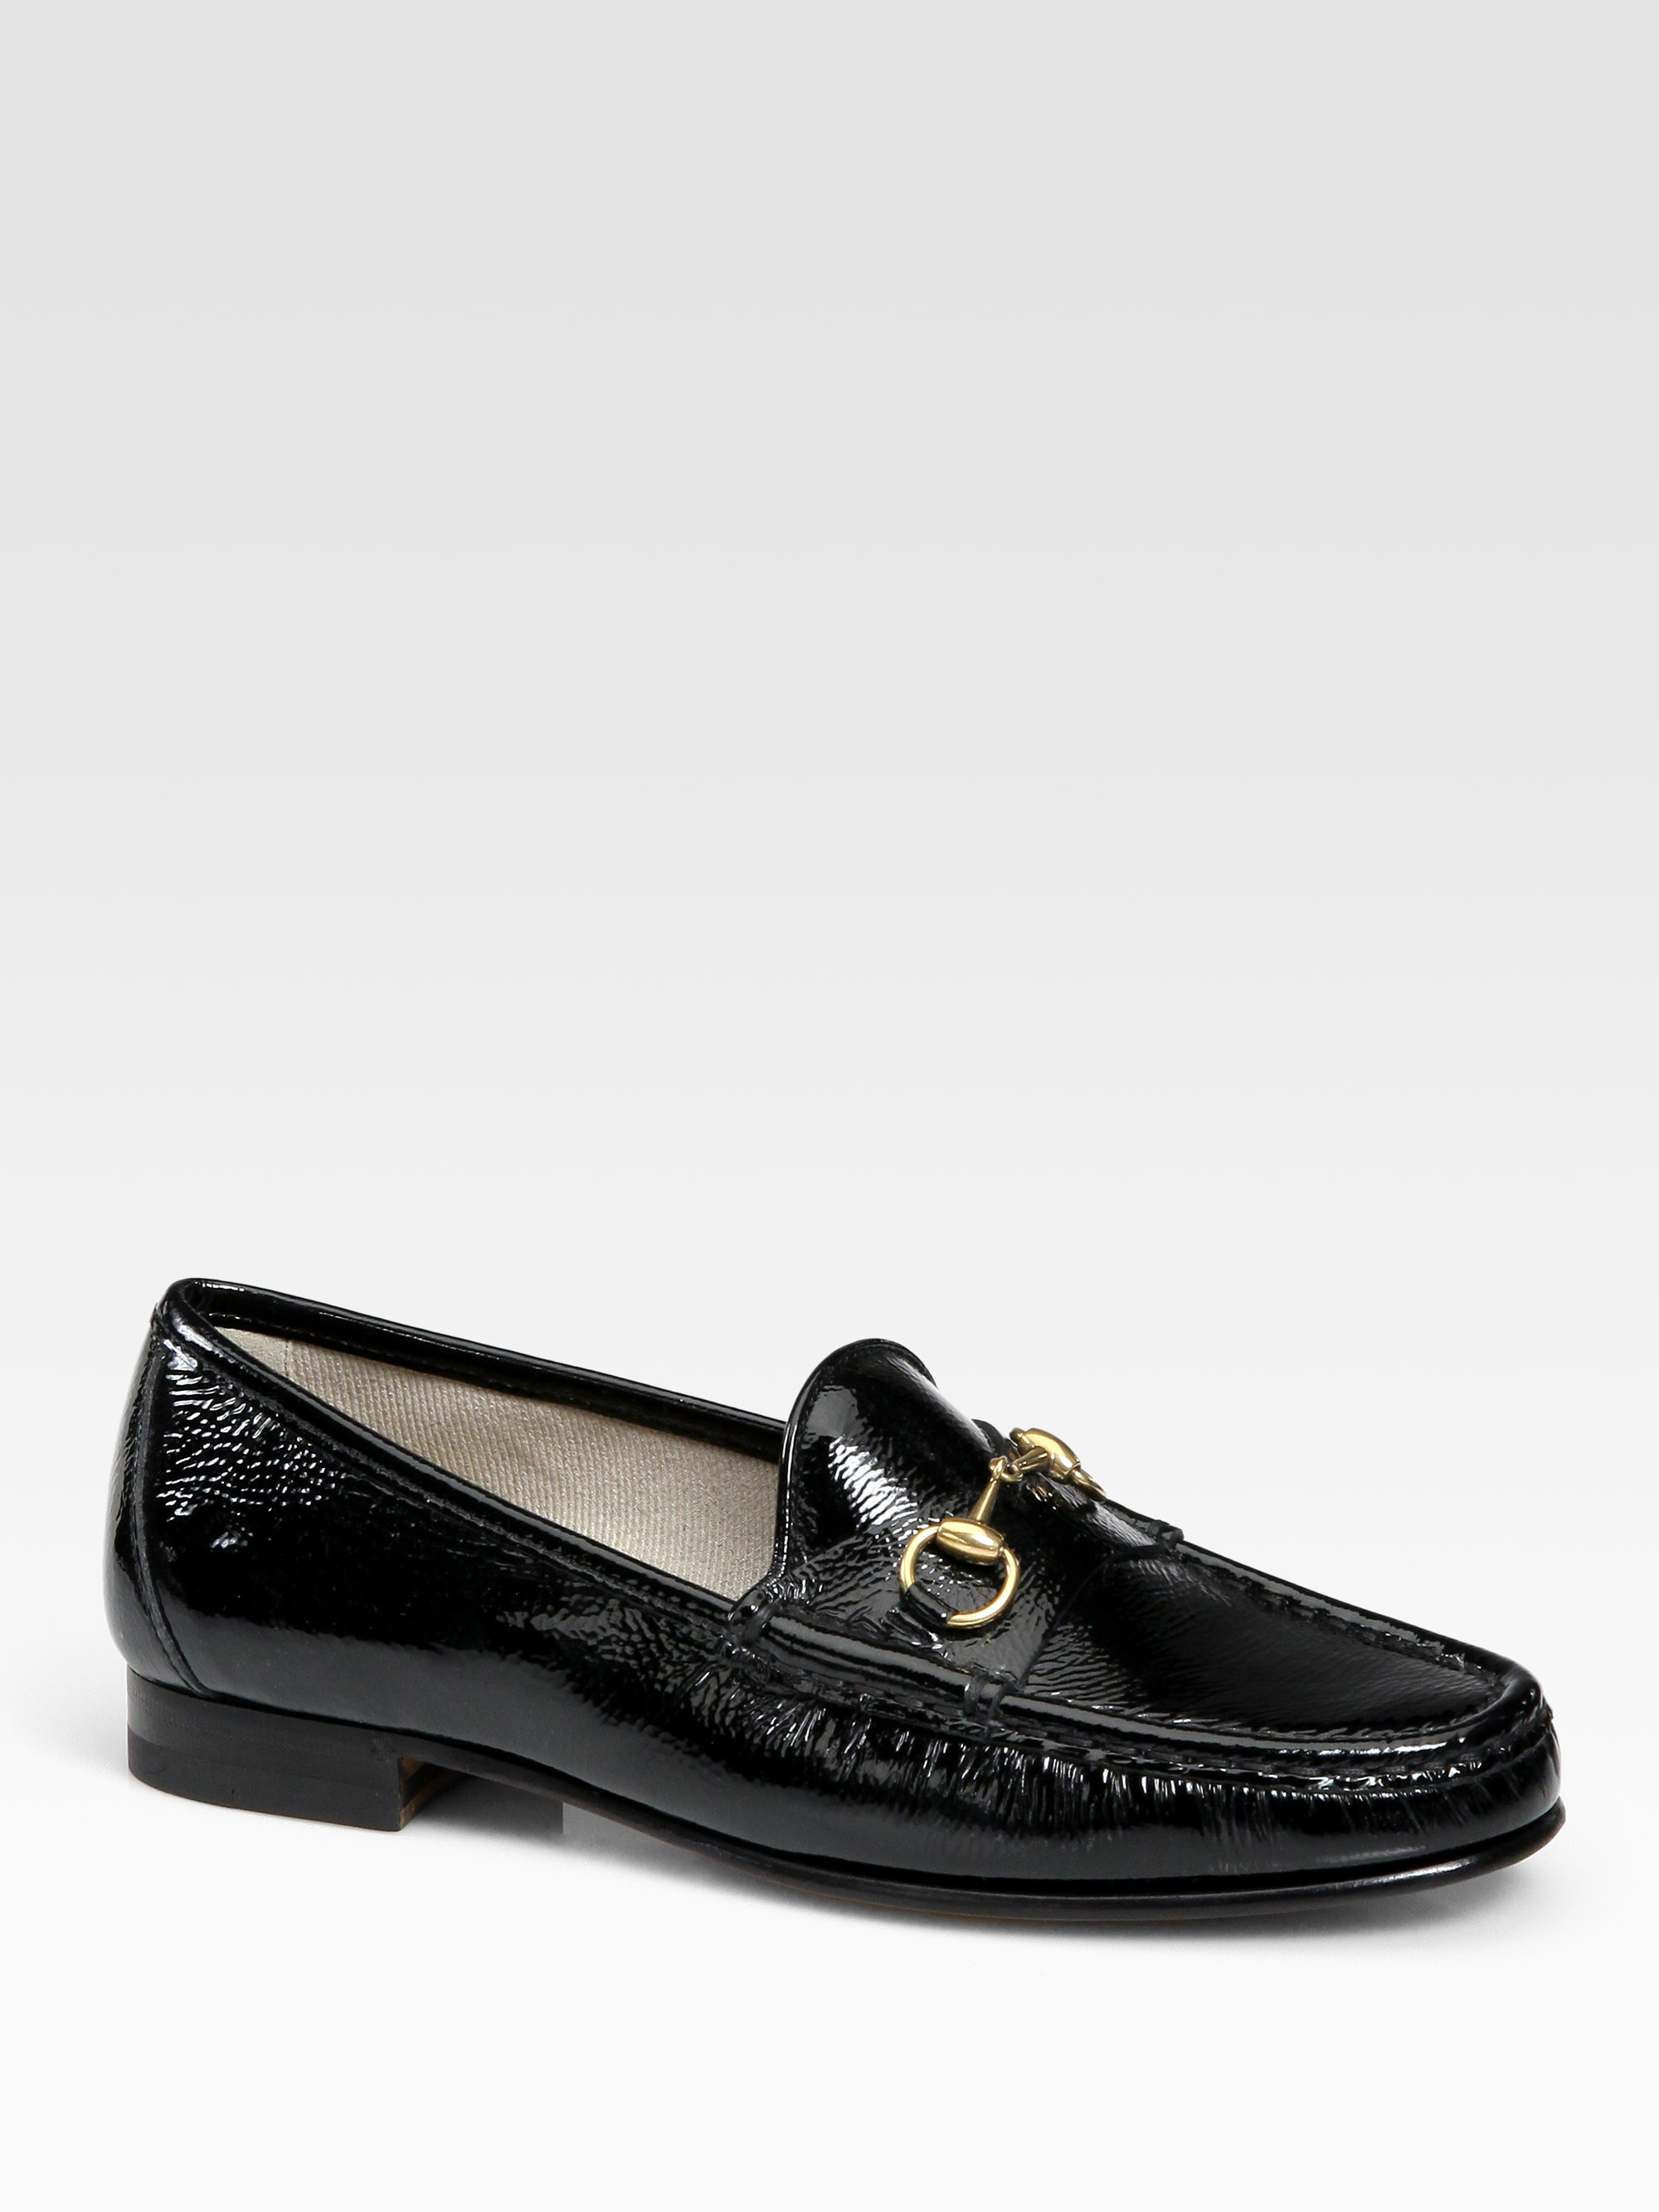 a365f7a18 Gucci Patent Leather Horsebit Loafers in Black - Lyst